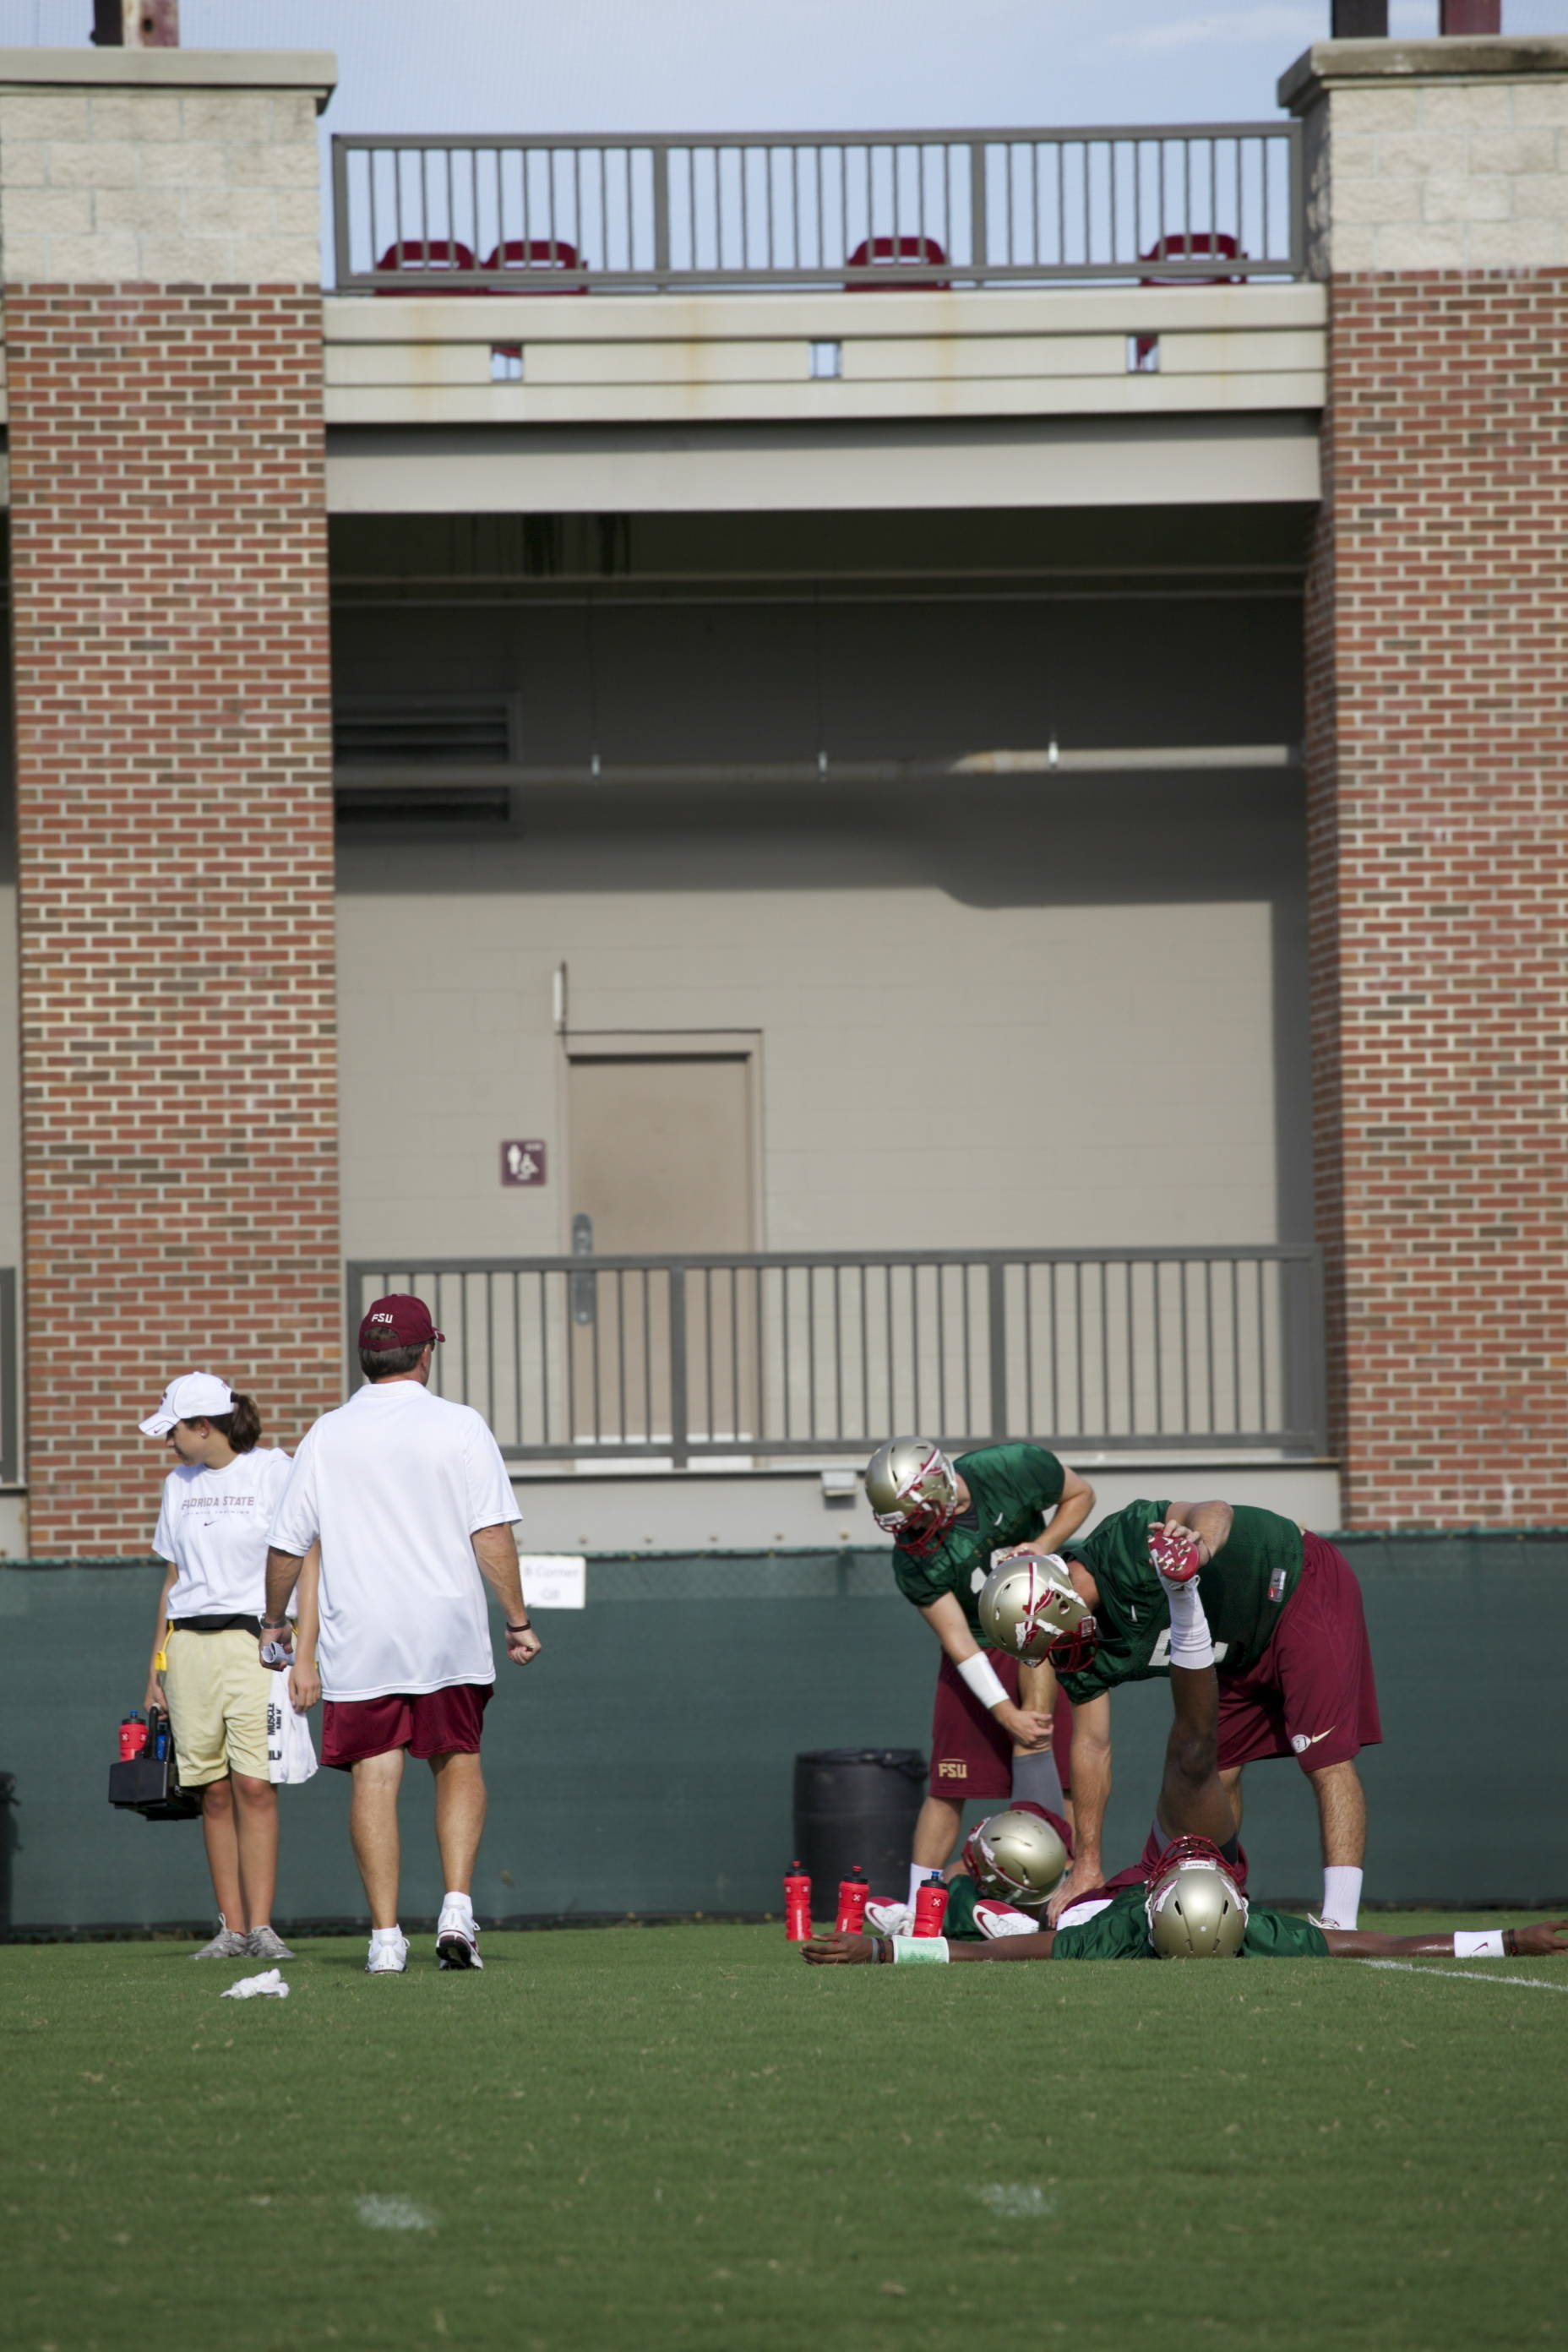 Coach Fisher helping the team stretch before practice.